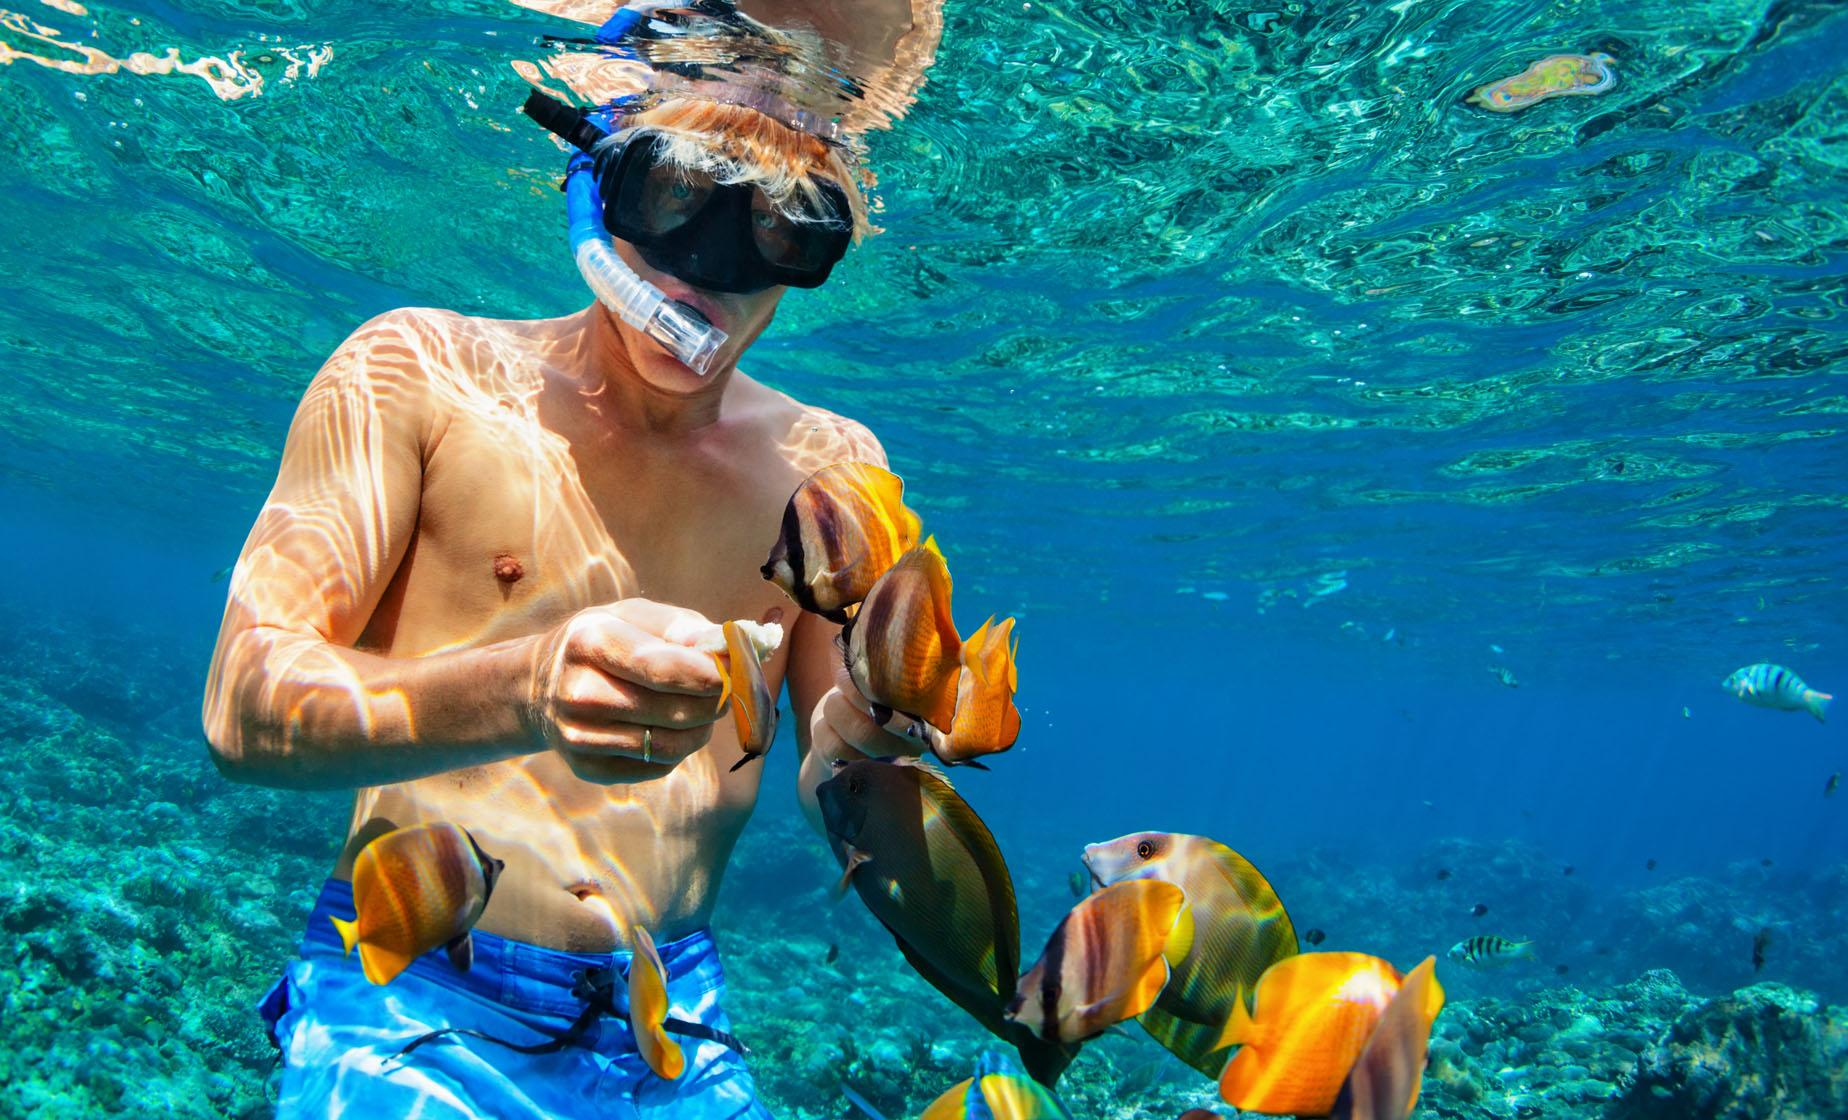 Nassau Half Day Boating & Snorkel Adventure Excursion to Famous Reefs & Shipwrecks